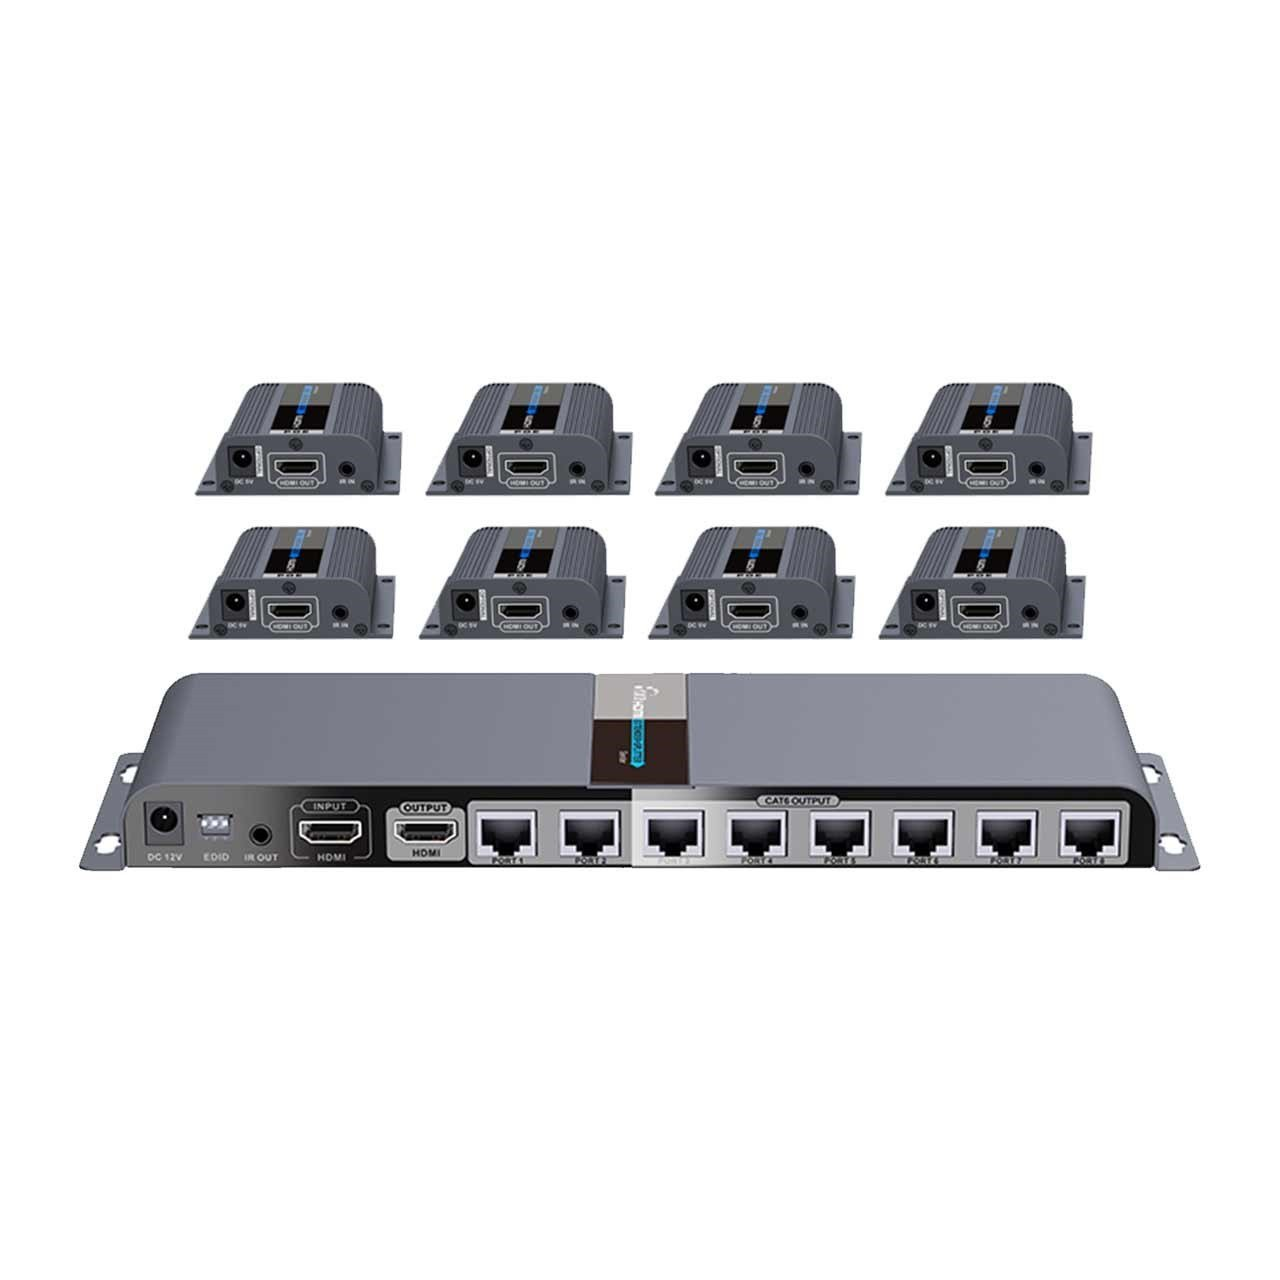 Kit Extensor Divisor Splitter Hdmi 1x8 Cat5/6 Lkv718pro